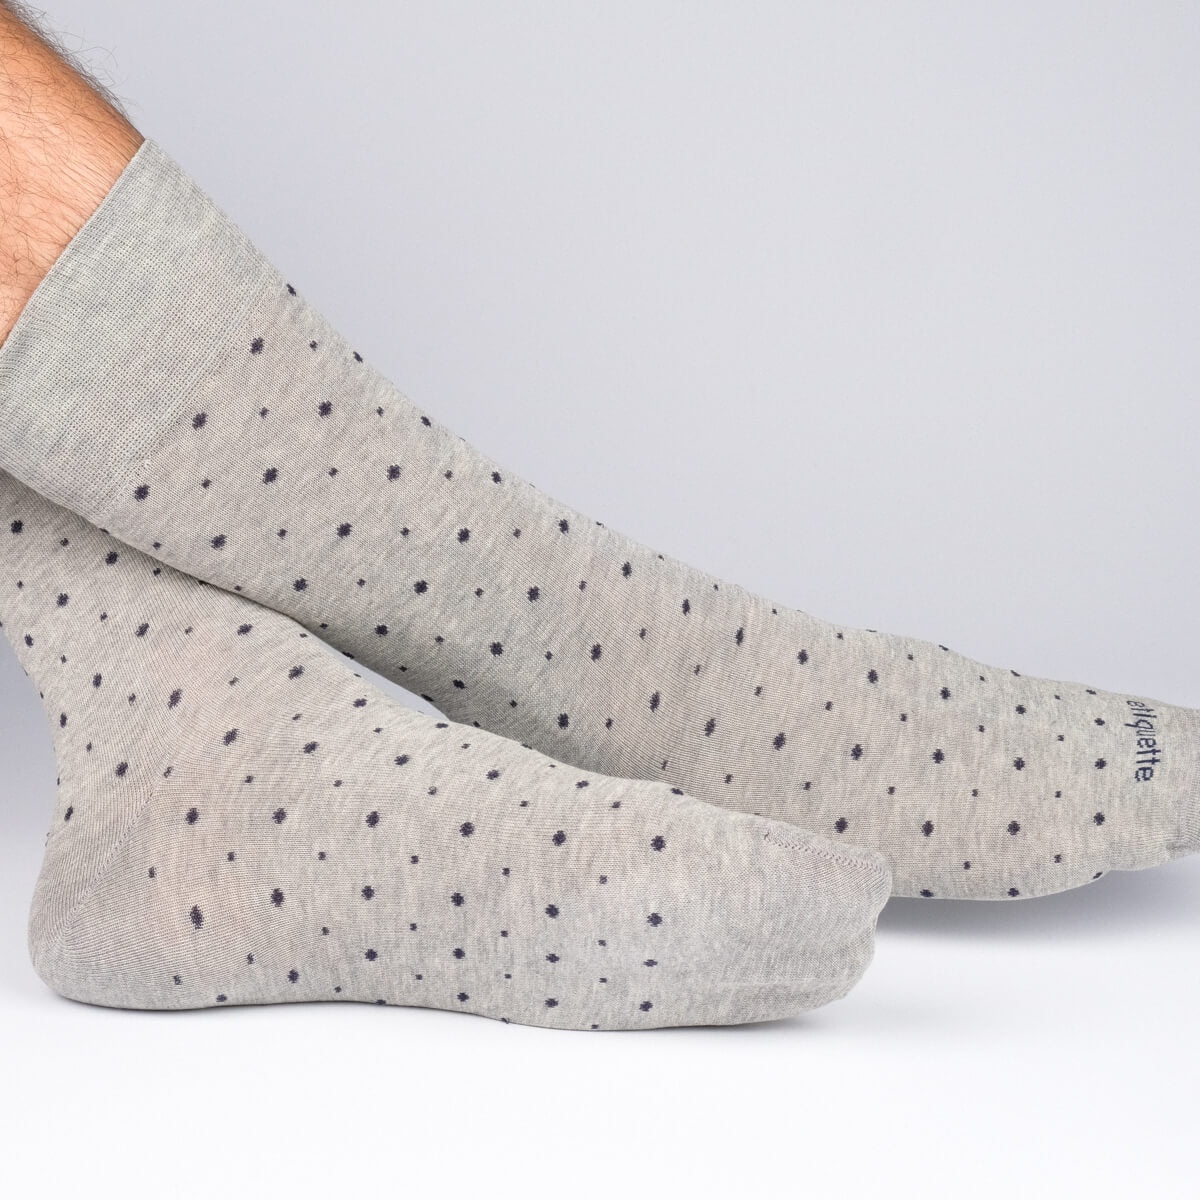 Mens Socks - Ball Point Men's Socks - Grey⎪Etiquette Clothiers